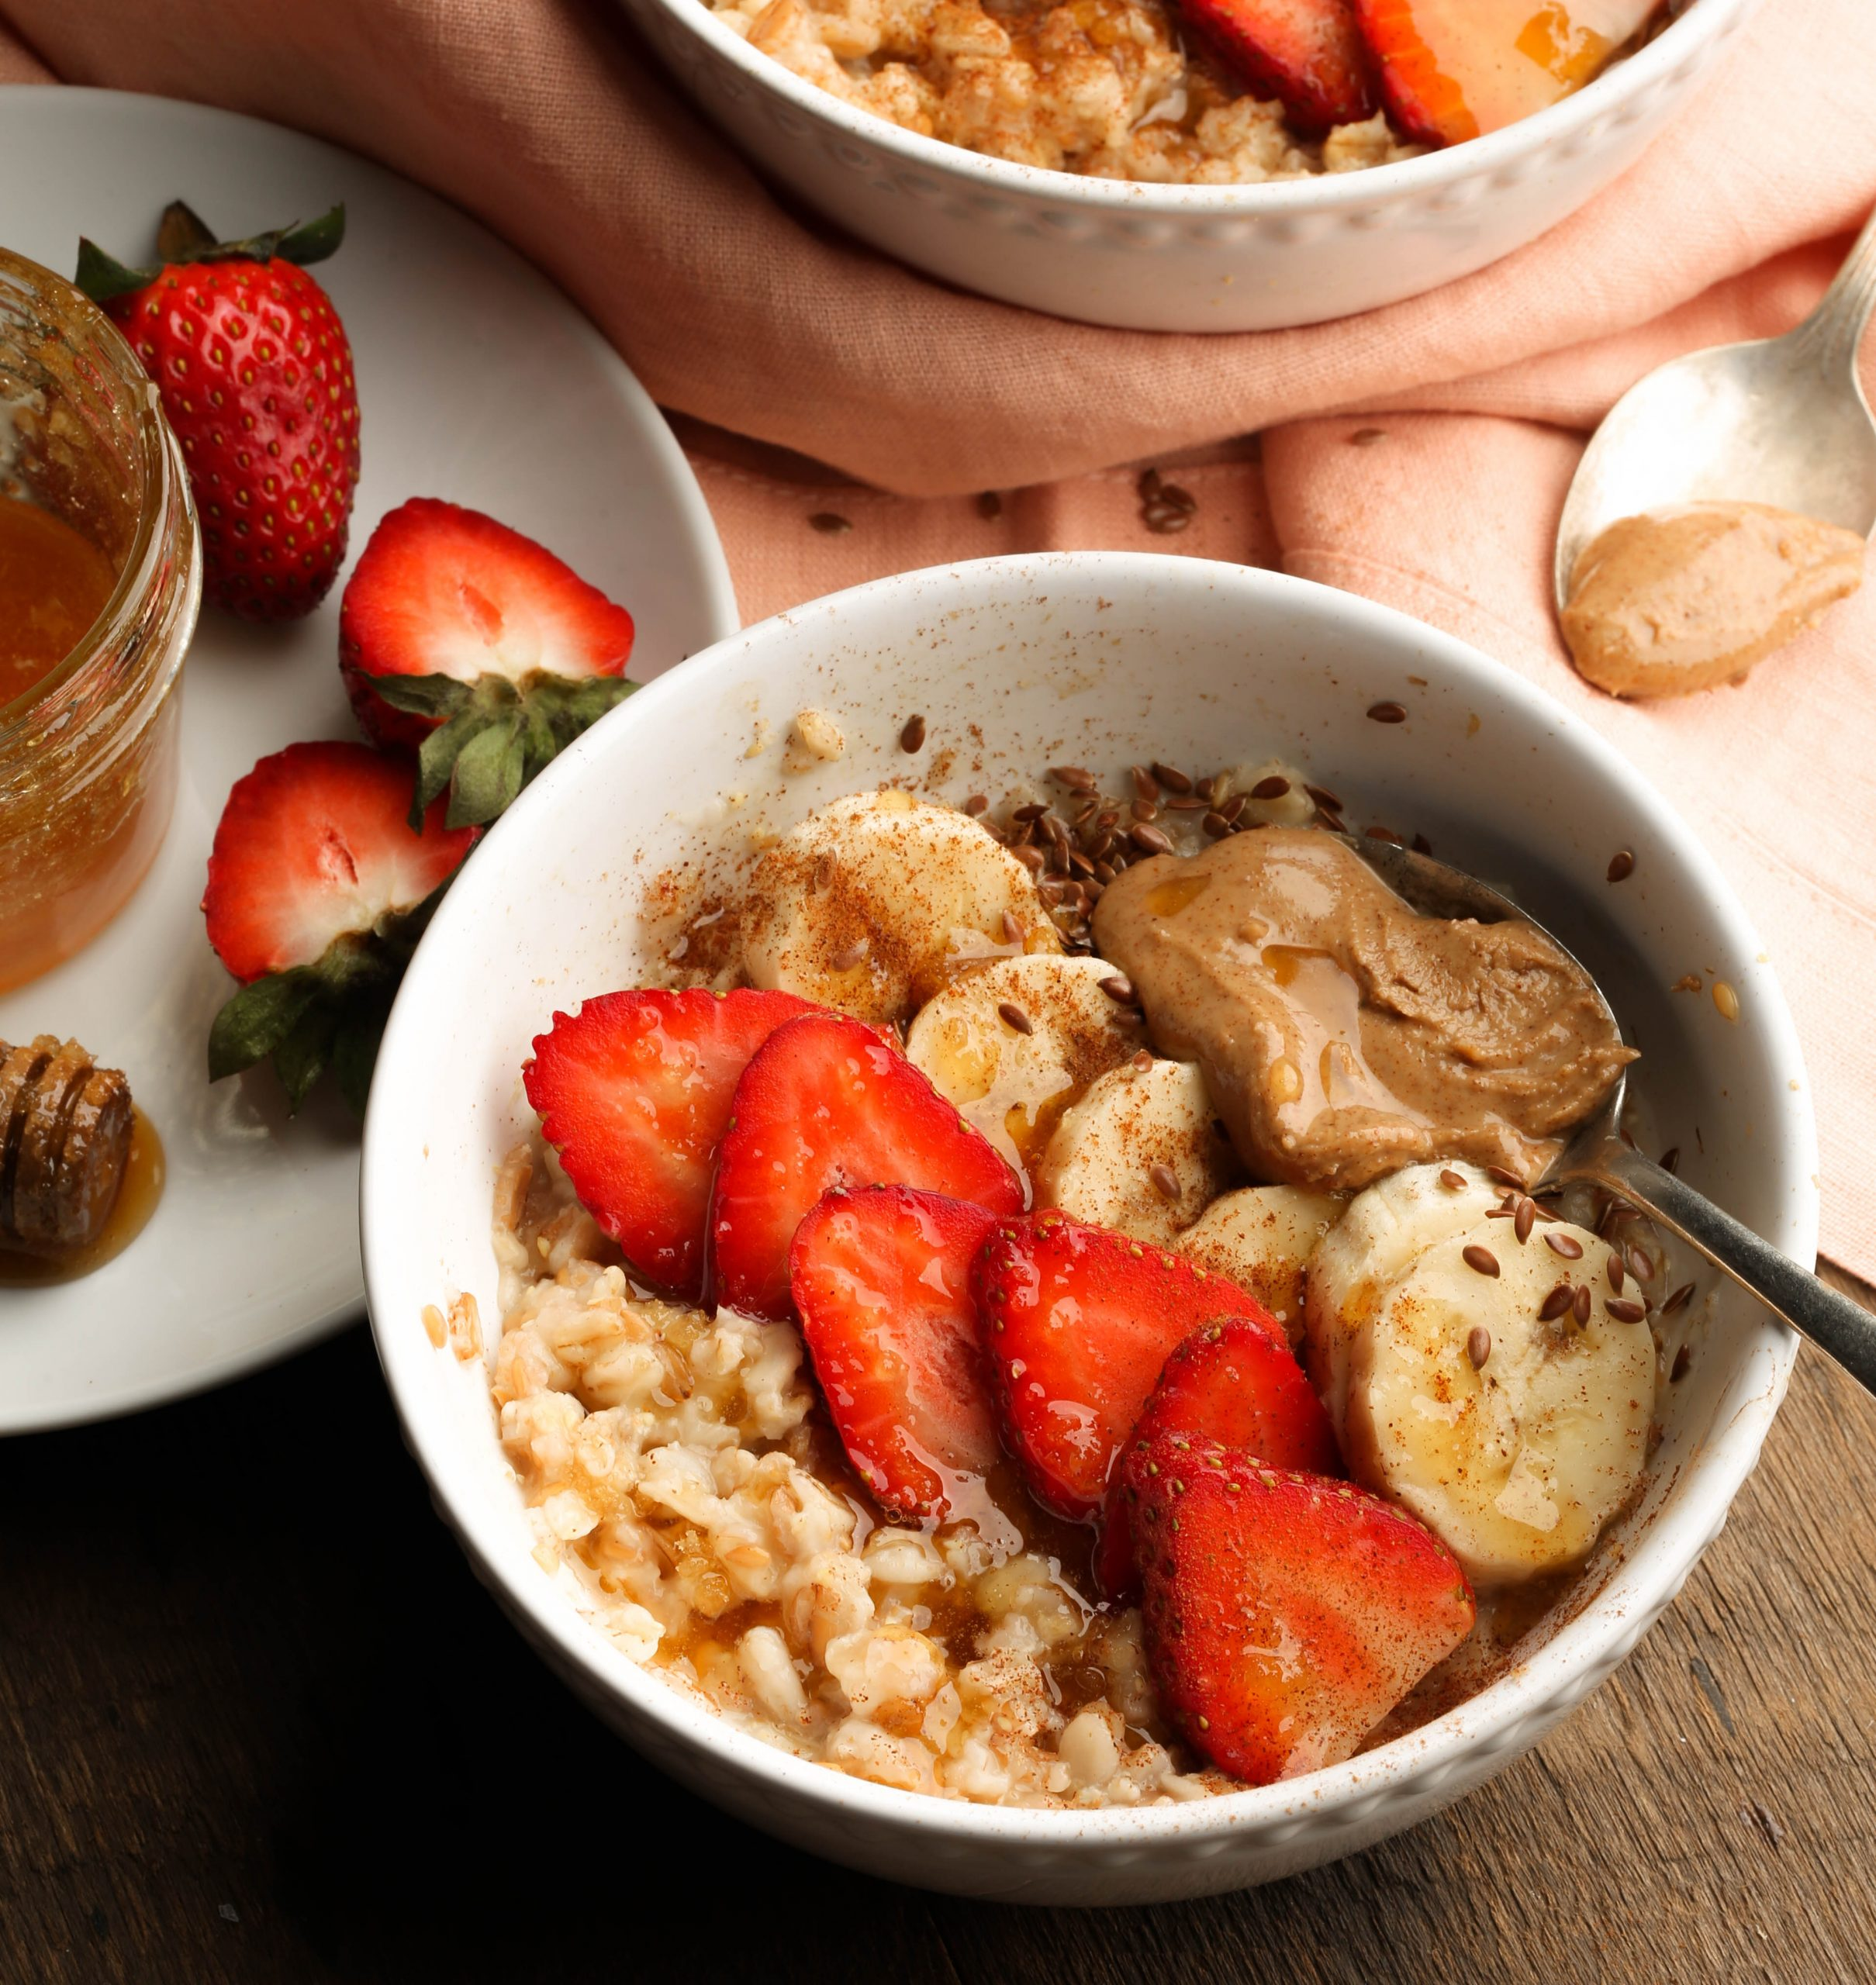 Five Grain Strawberry Almond Oat Bowls